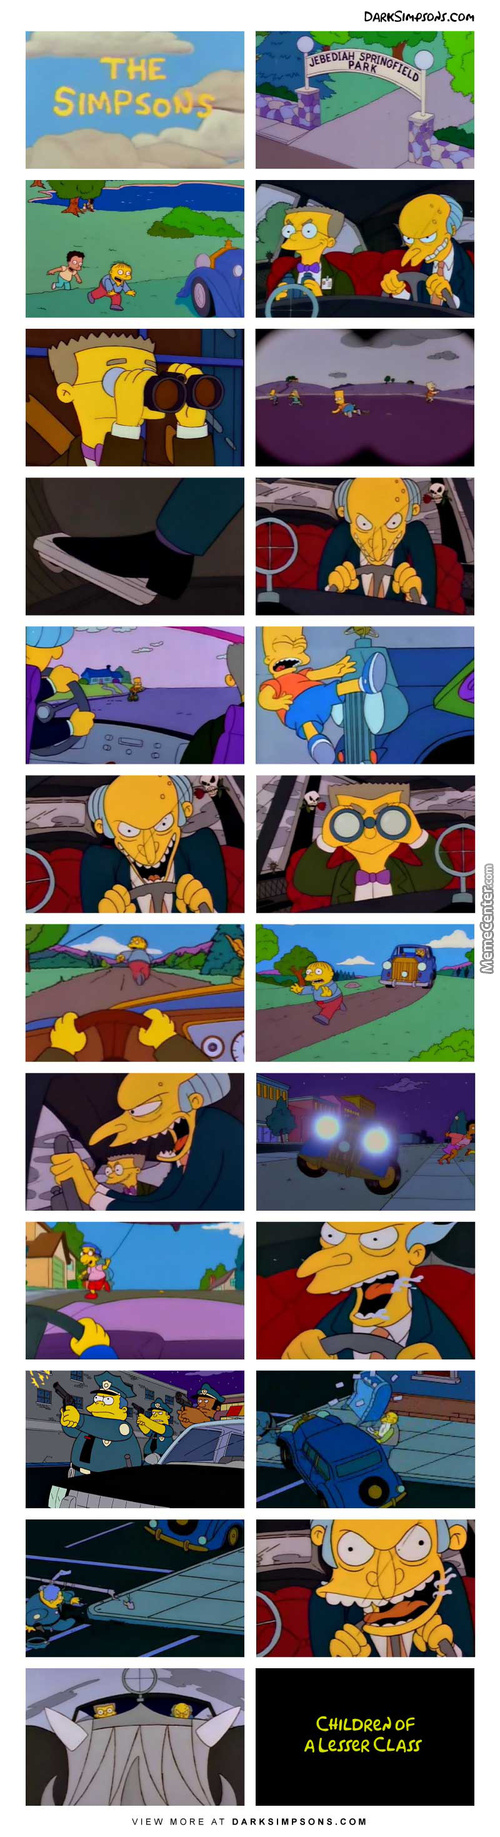 I Should Be Able To Run Over As Many Kids As I Want! – Mr. Burns